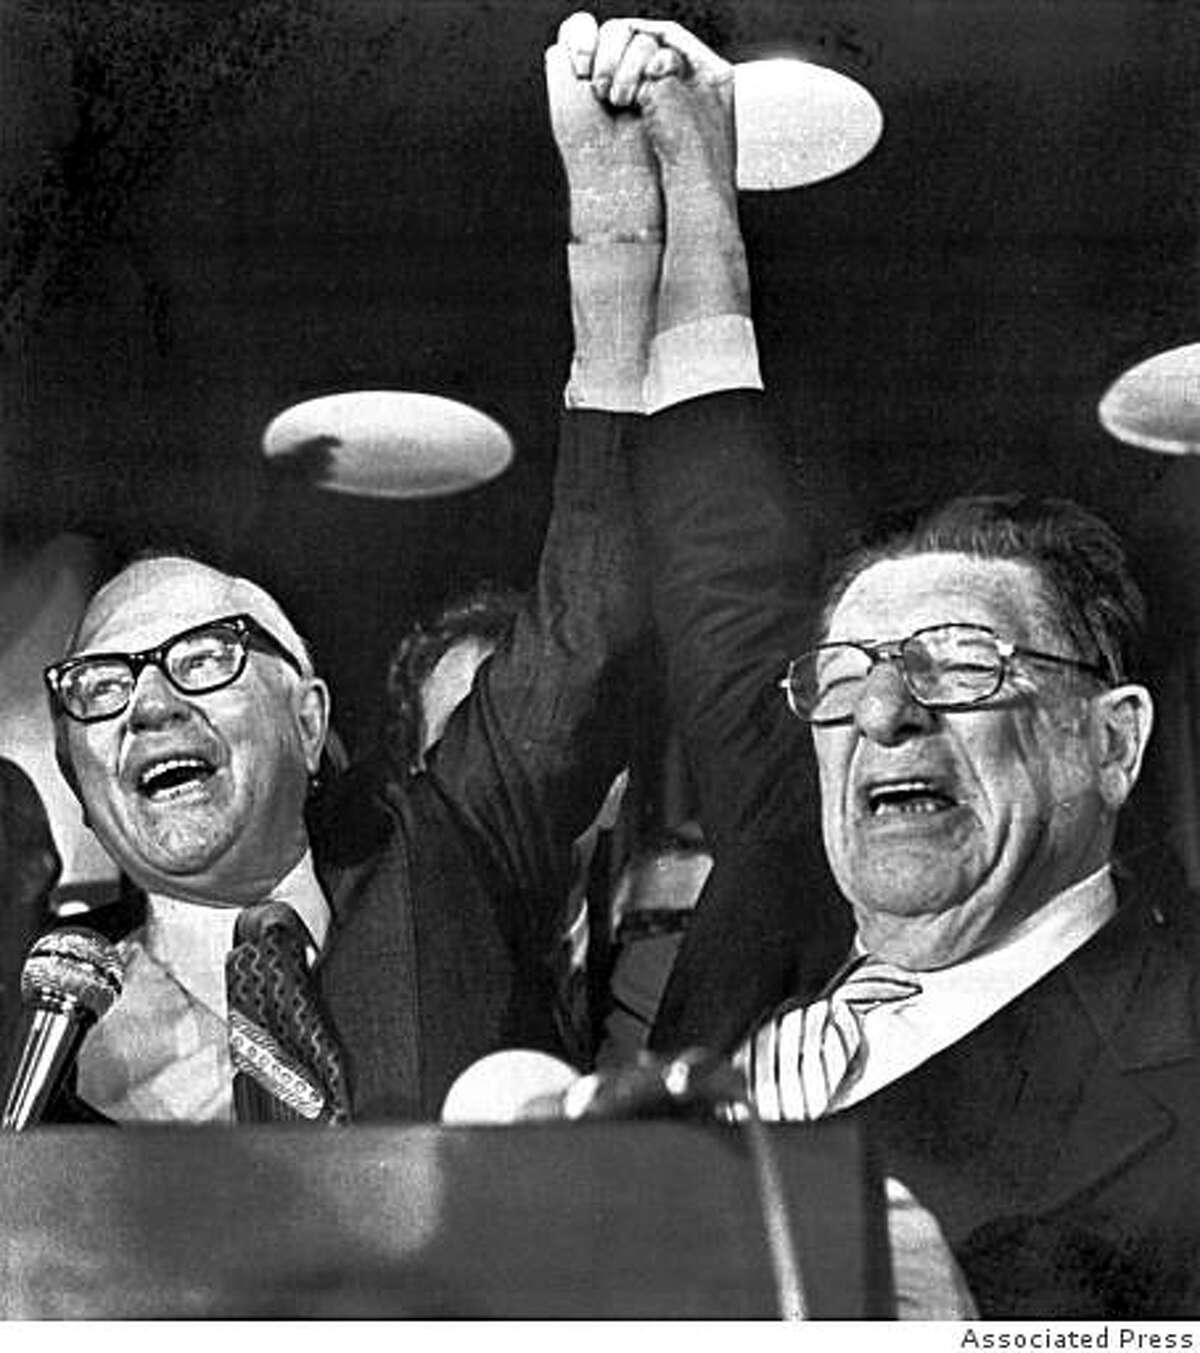 Paul Gann, left, and Howard Jarvis, hold up their hands on the night of June 7, 1978, as their co-authored initiative Proposition 13, took a commanding lead in the California primary.The Proposition provides monumental tax relief to peroperty owners. (AP Photo/stf)